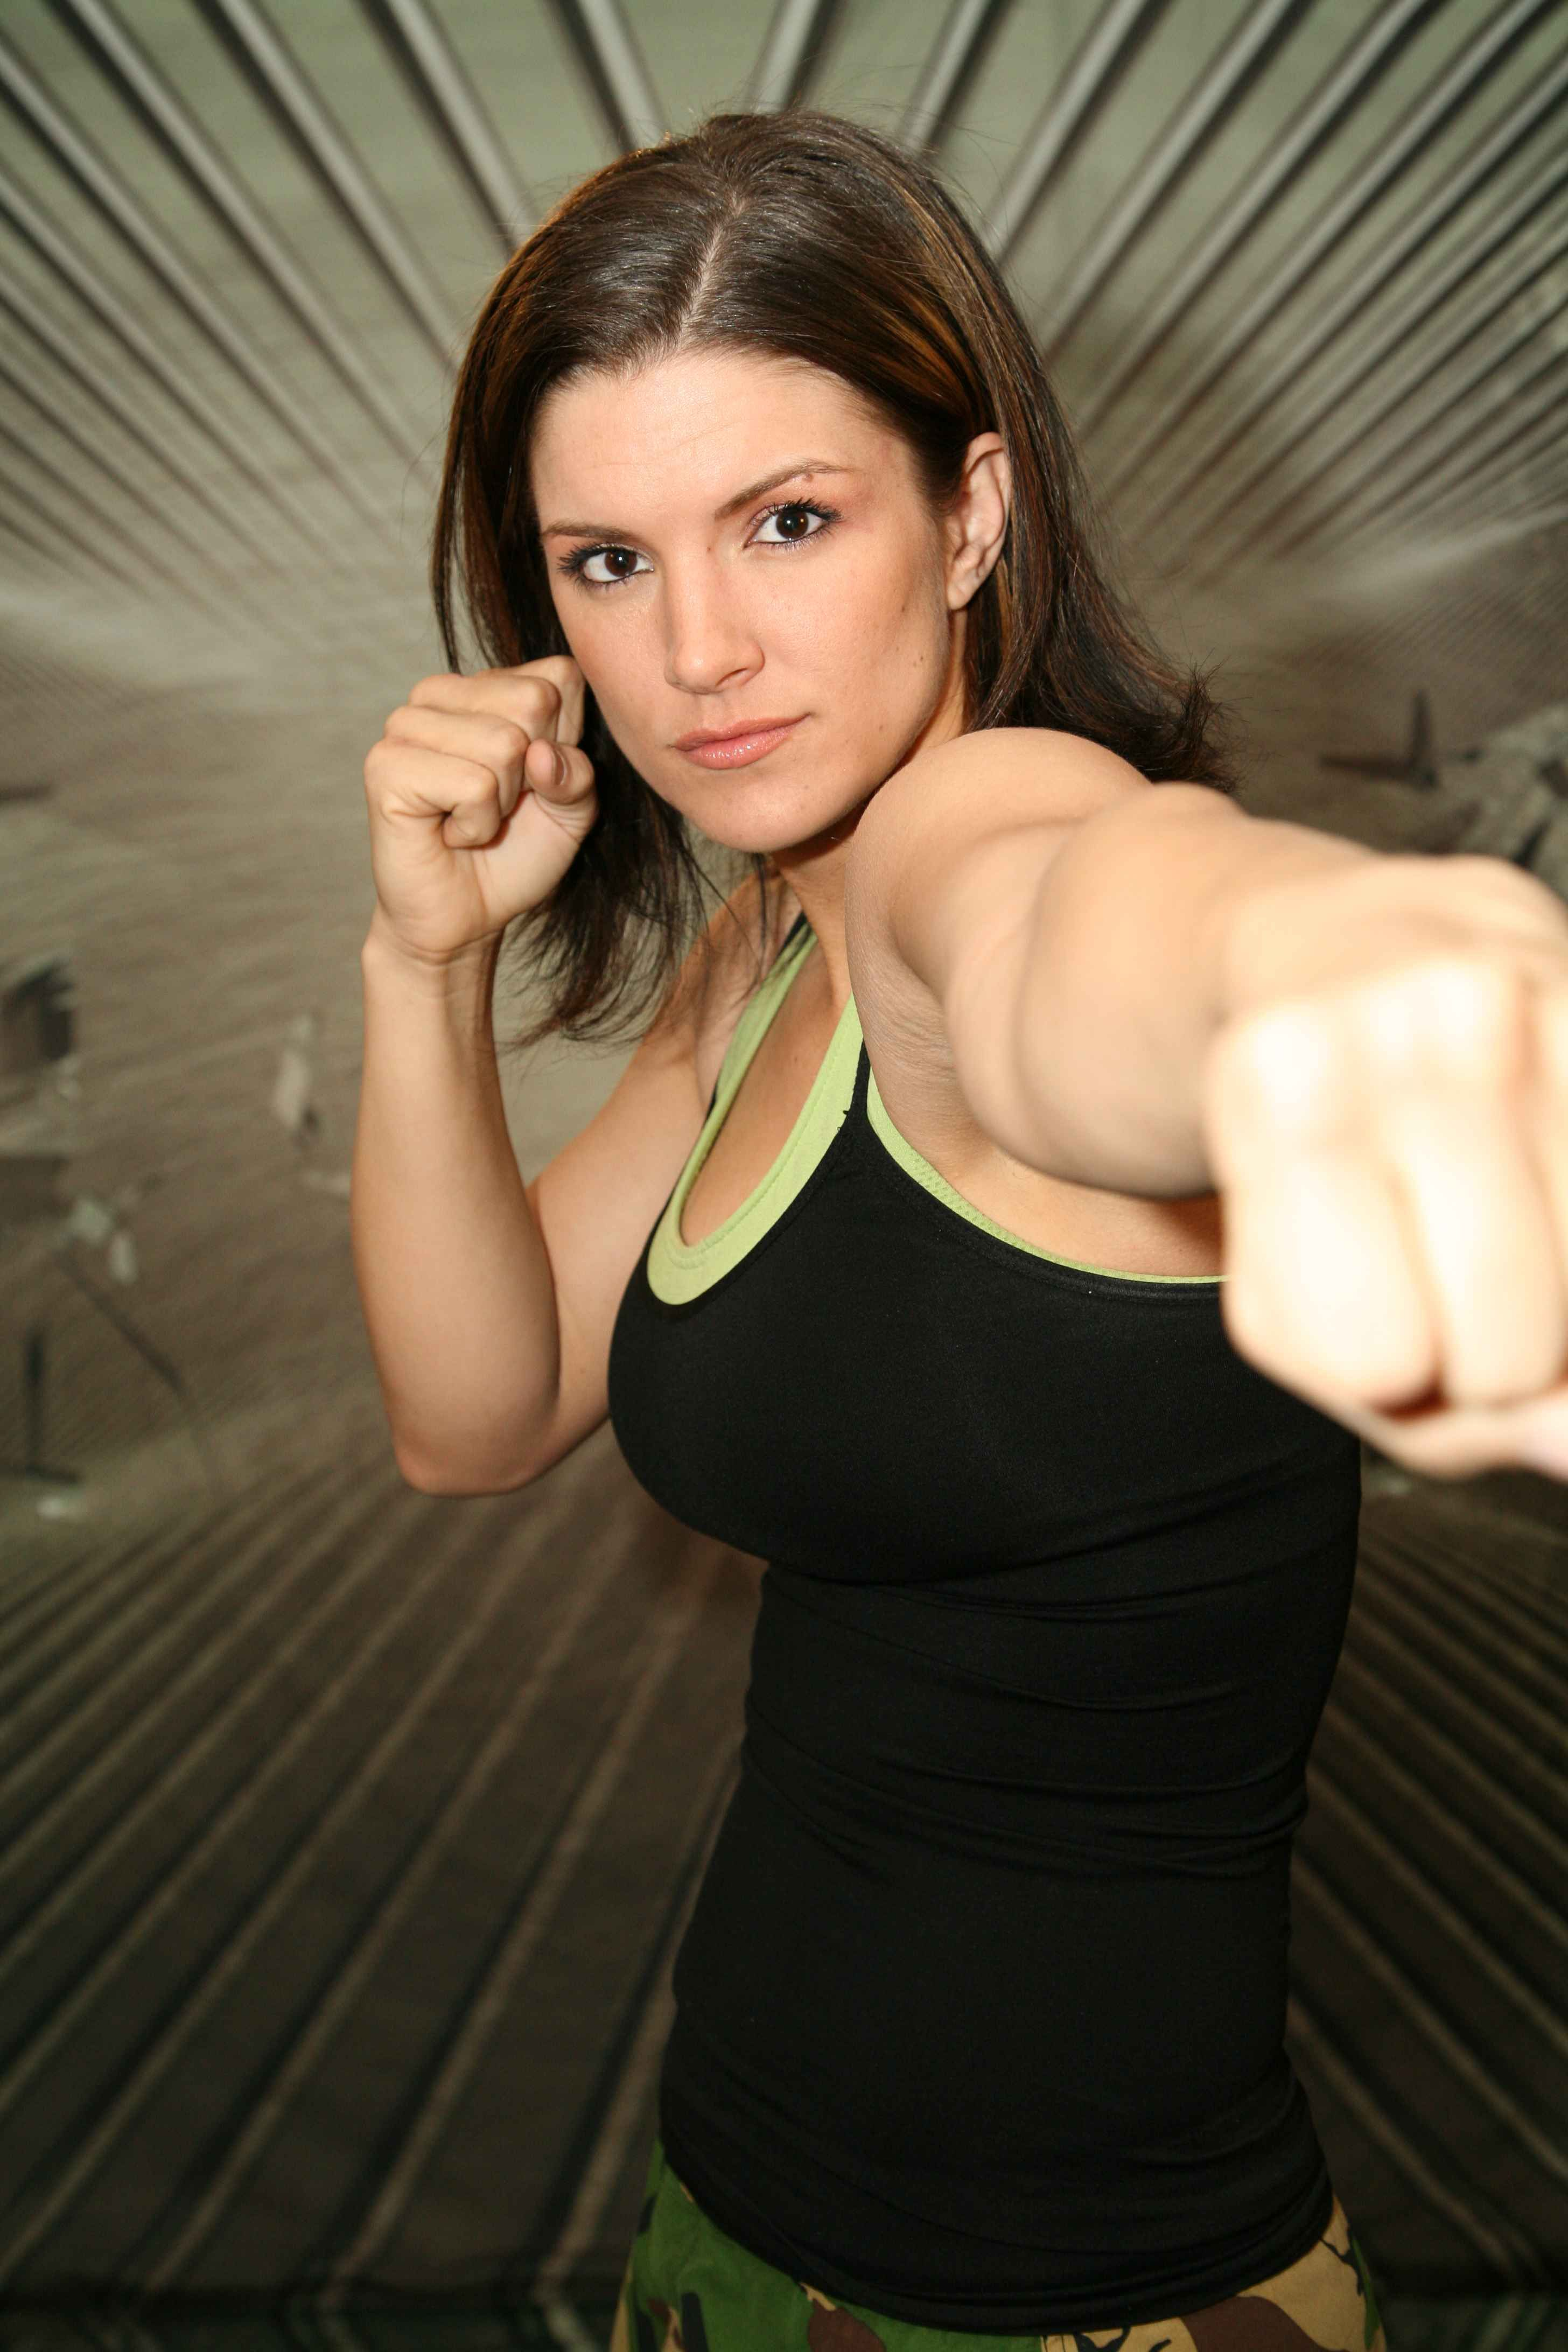 Polished beauty Gina Carano Muay Thai, Female Mma Fighters, Ufc Fighters,  Crossfit,